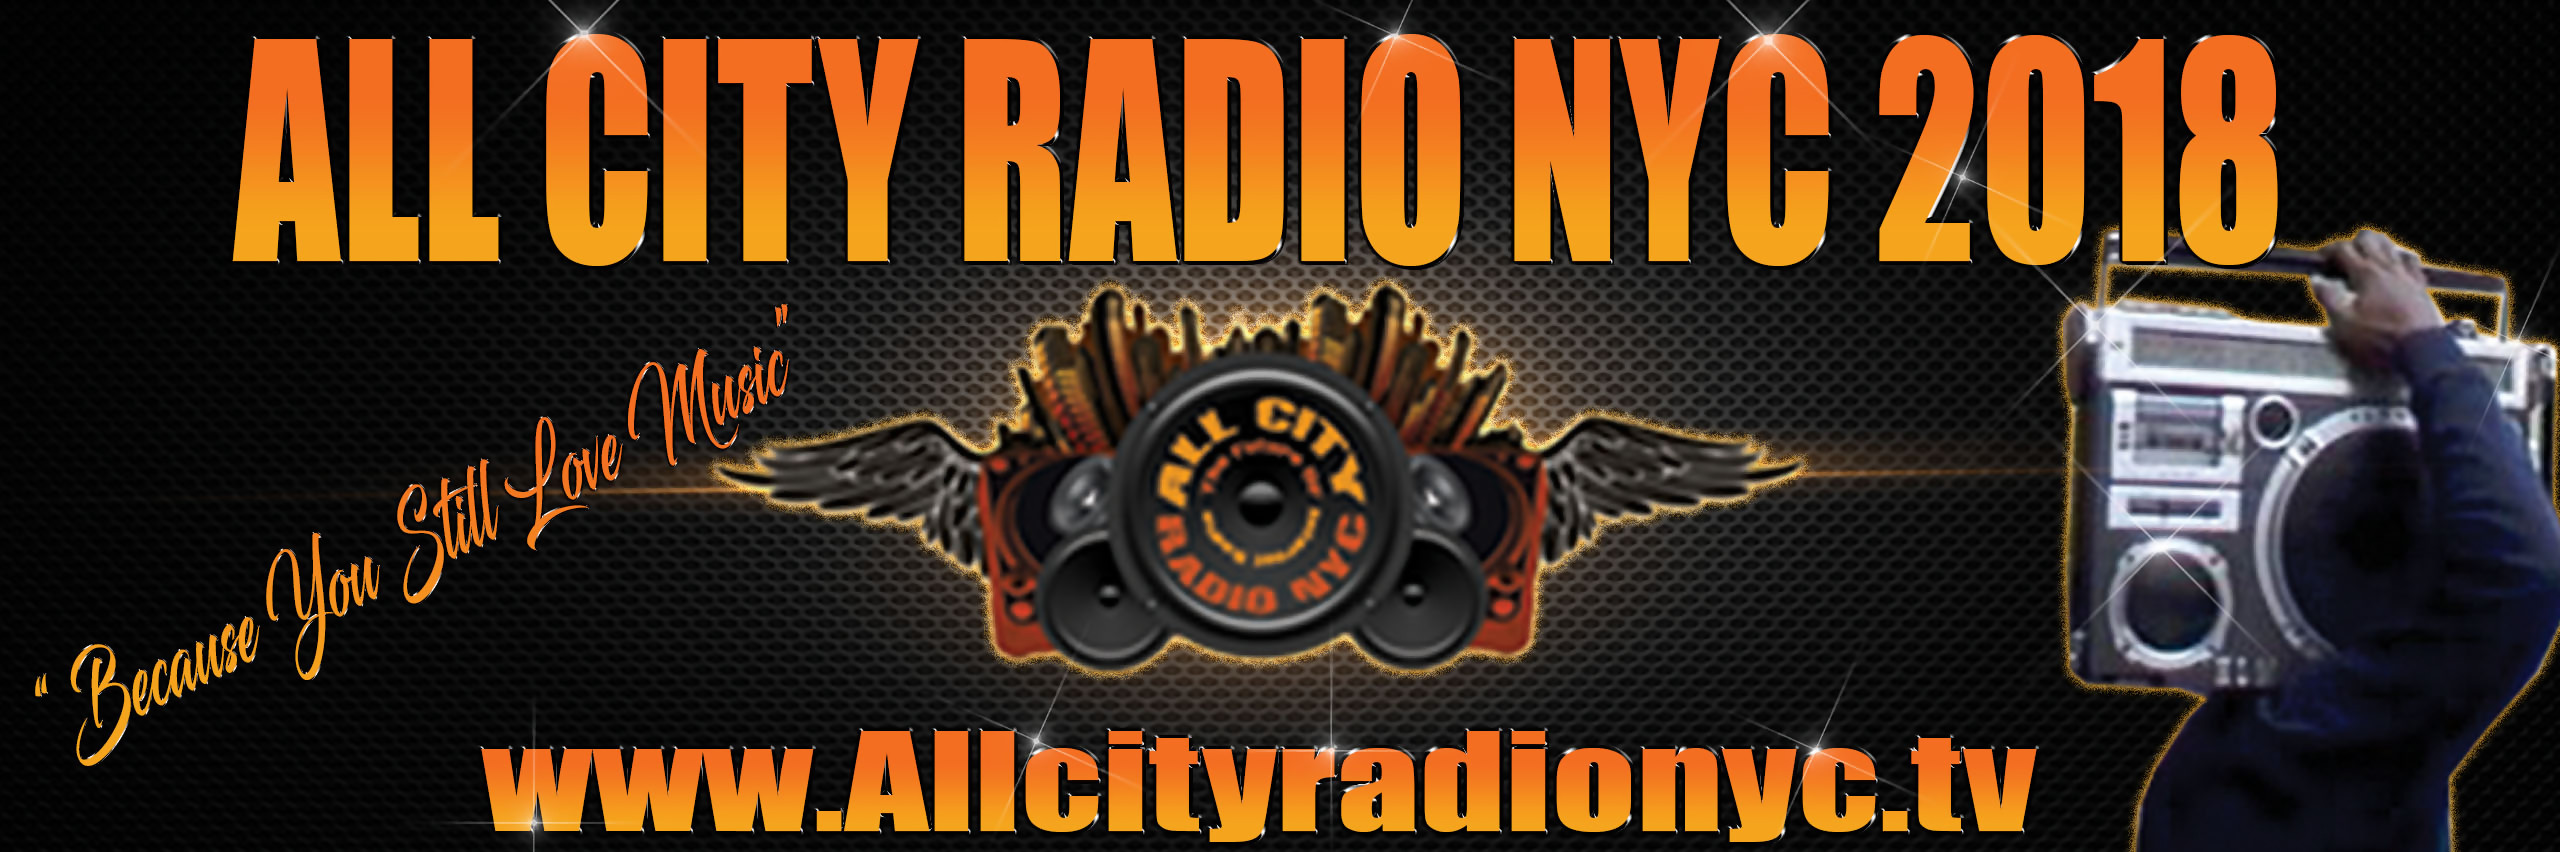 All City Radio NYC